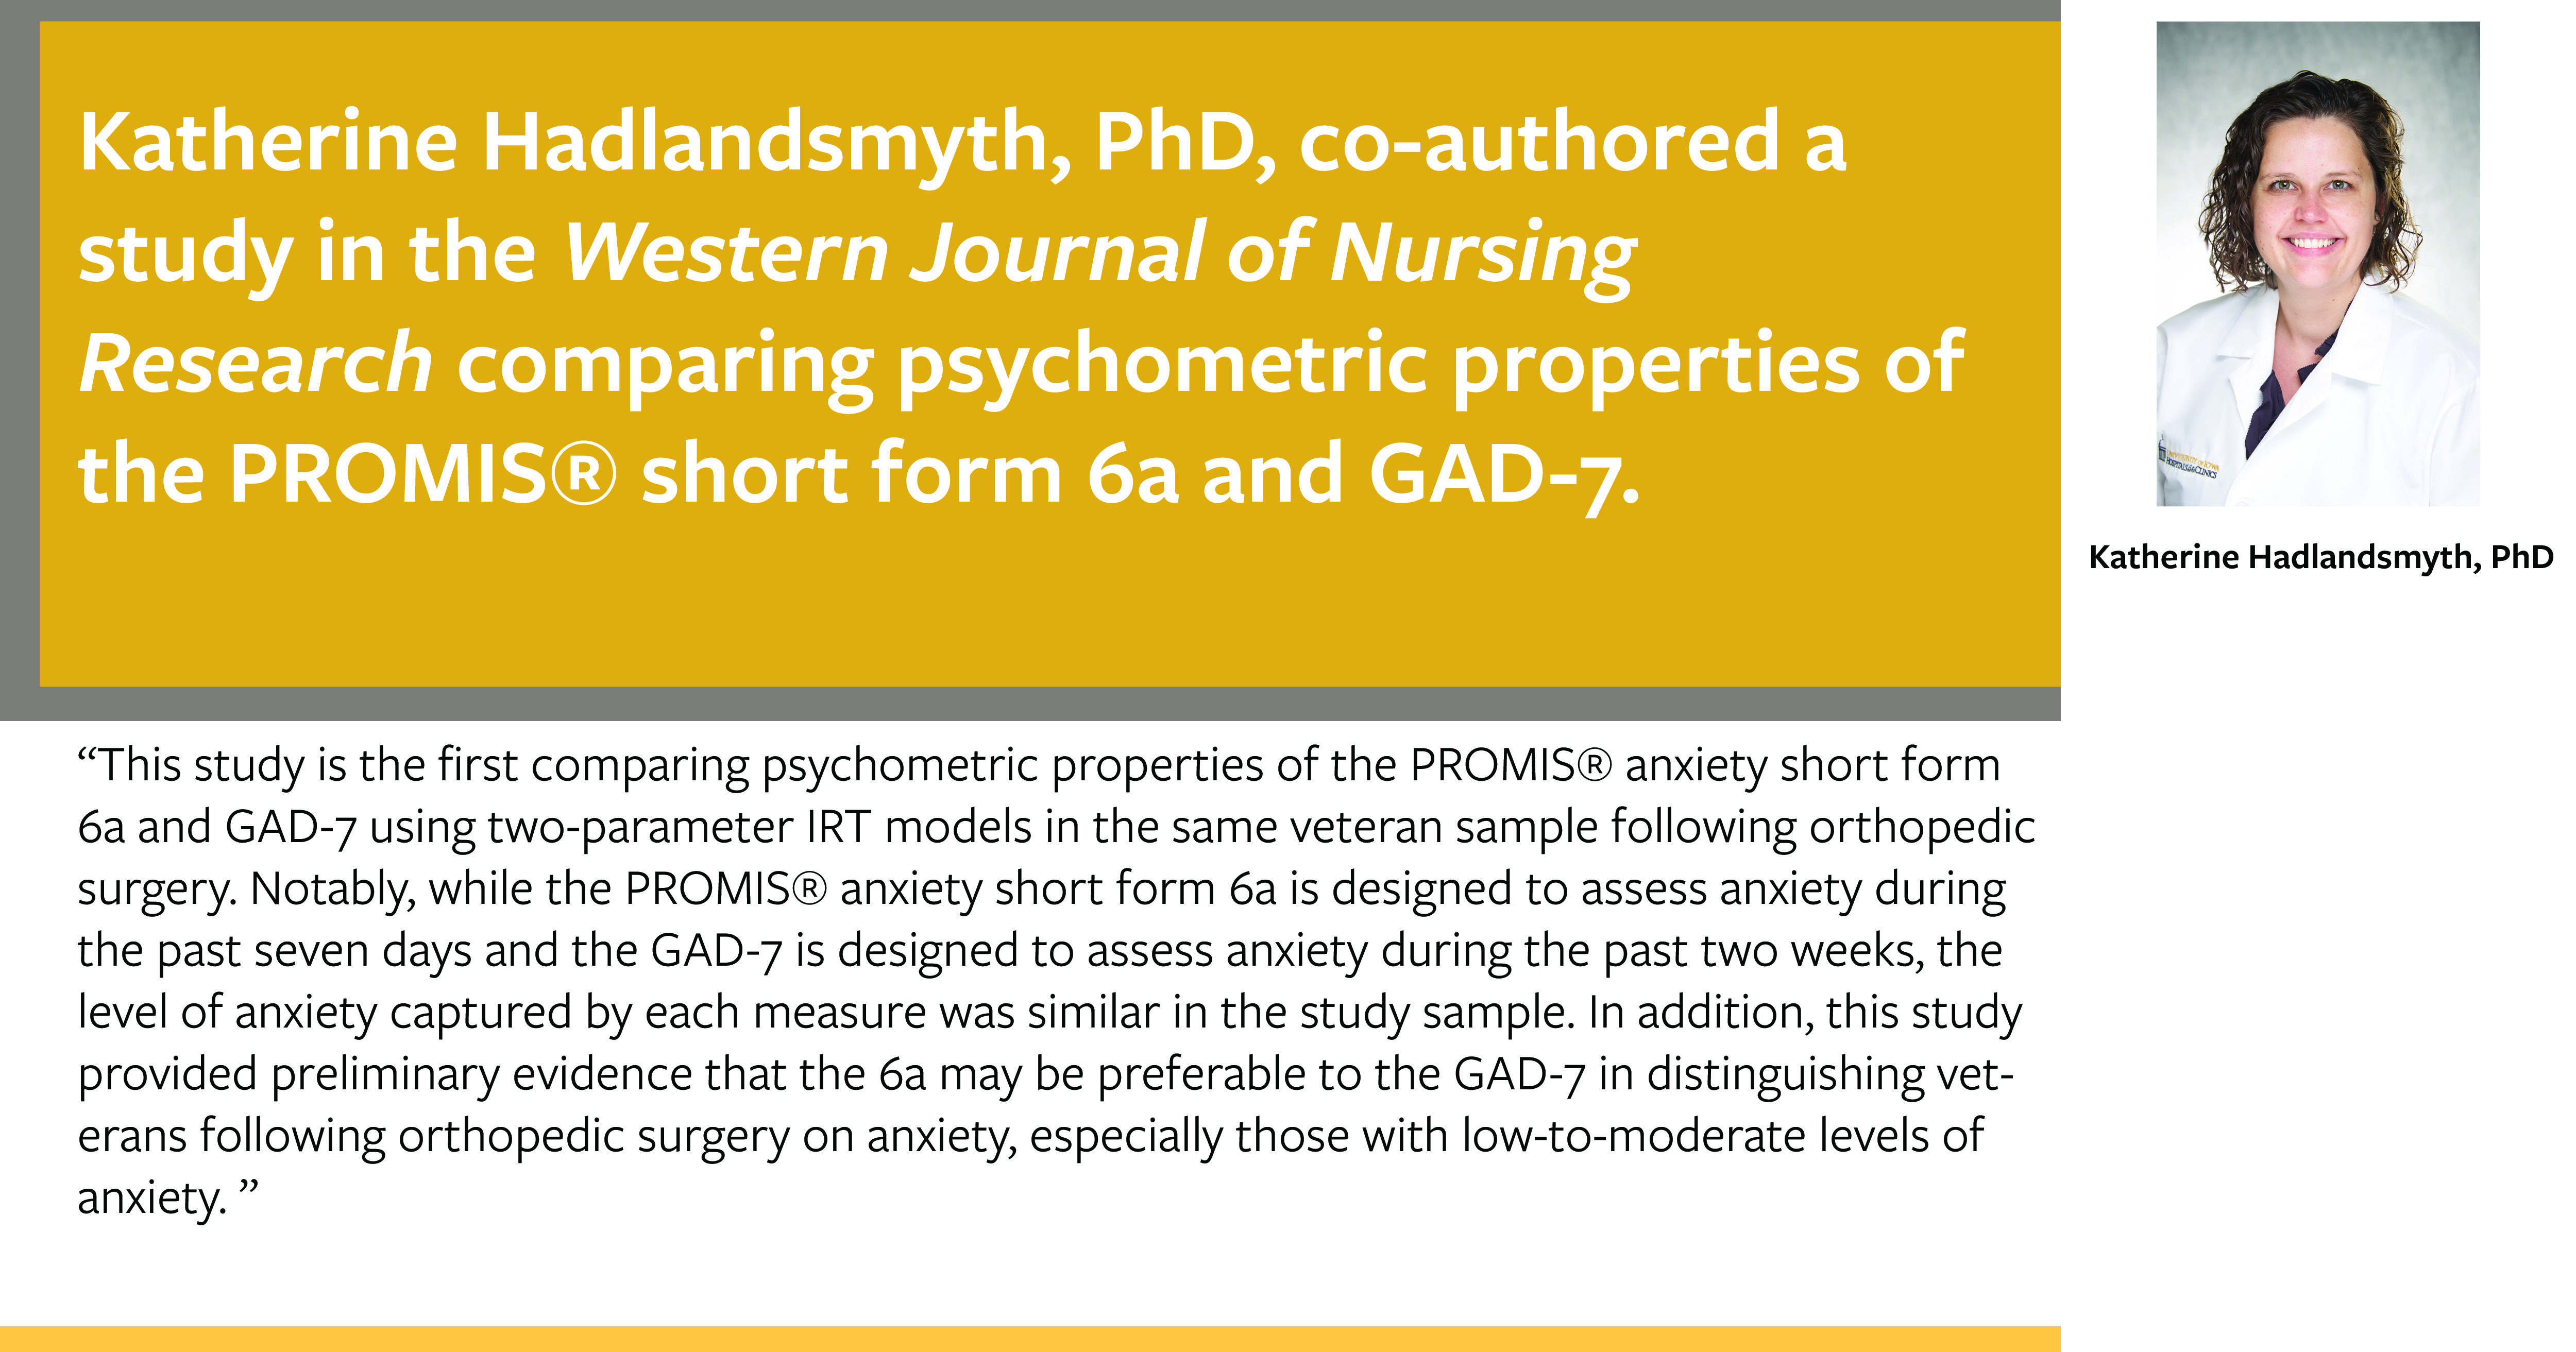 Katherine Hadlandsmyth co-authored a study comparing psychometric properties of the PROMS short form 6a and GAD-7